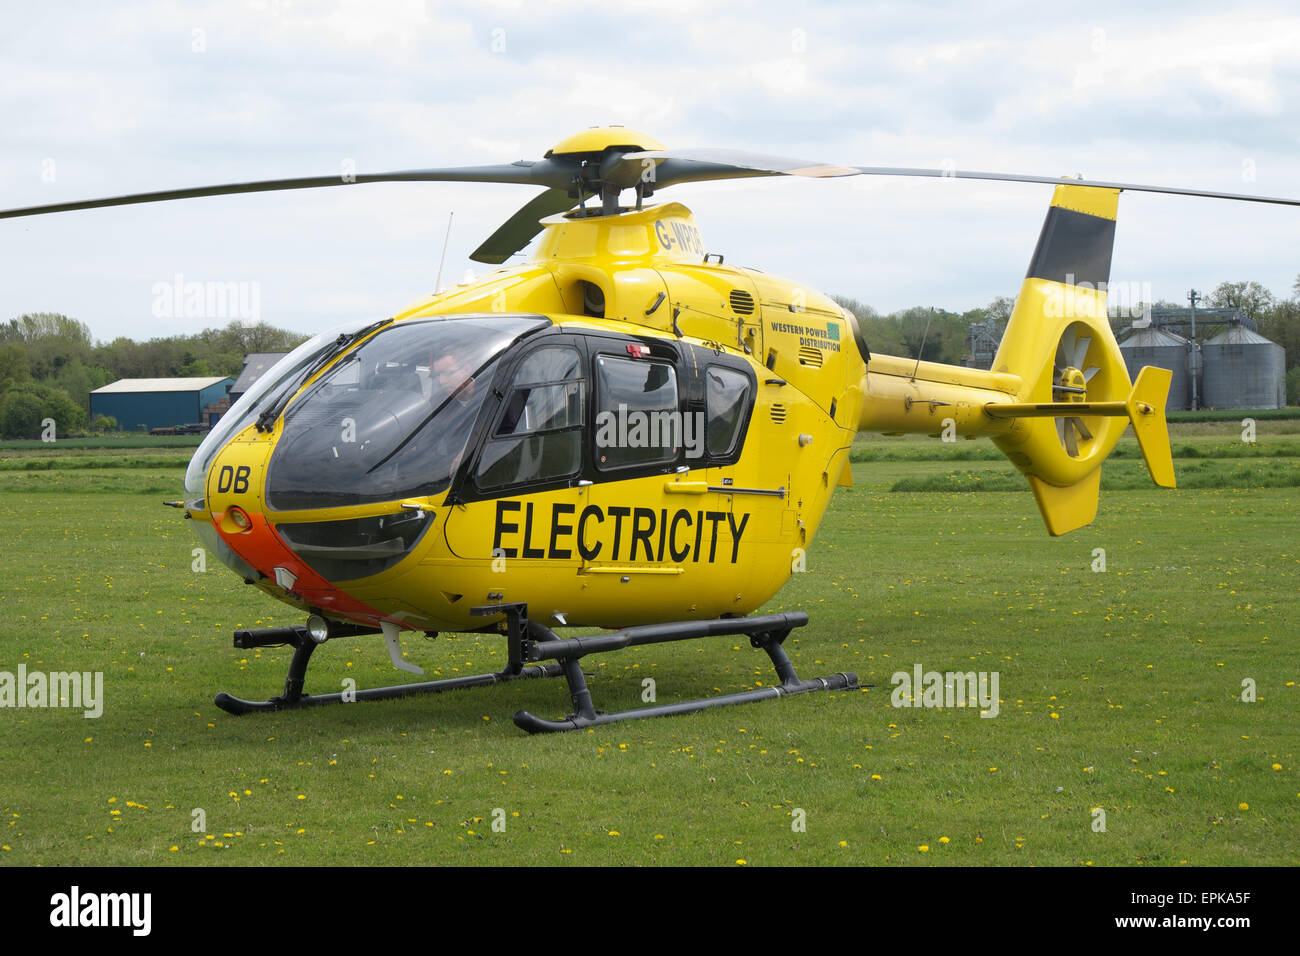 WPD Western Power Distribution EC135 helicopter used to check electricity power supply wires lines and pylons in Stock Photo